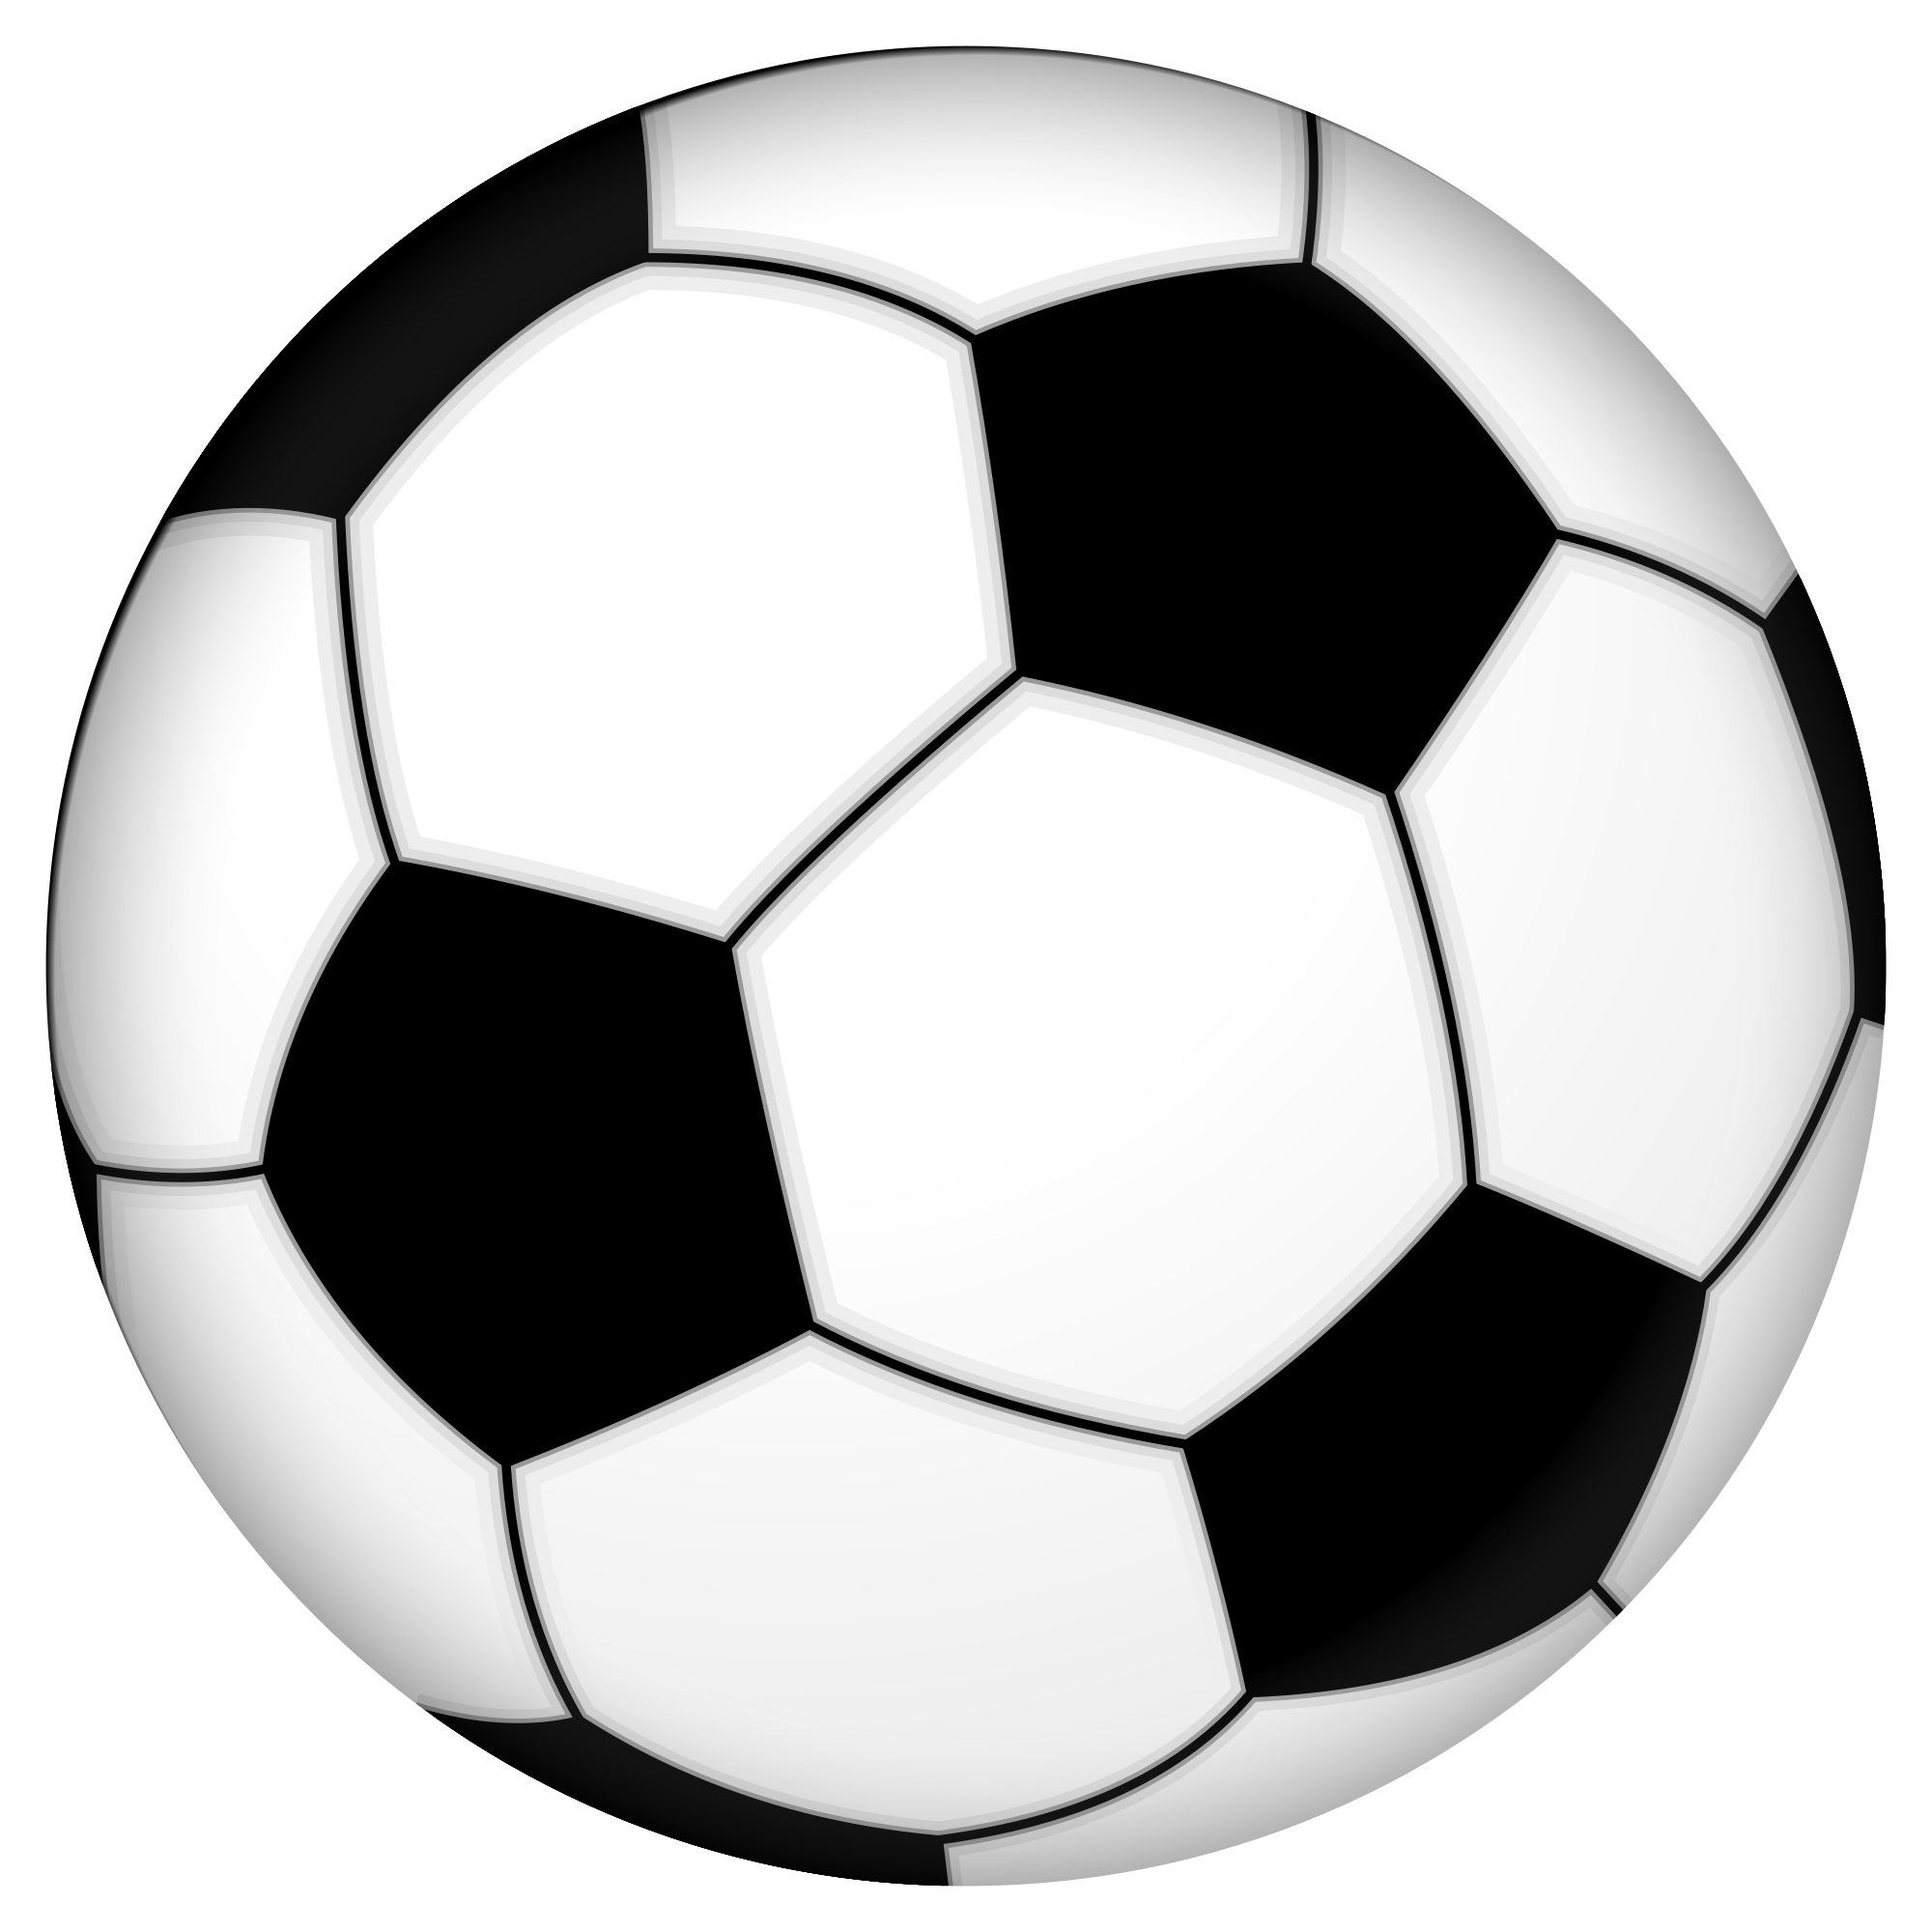 Kicking Soccer Ball Clip Art Free Clipart Images